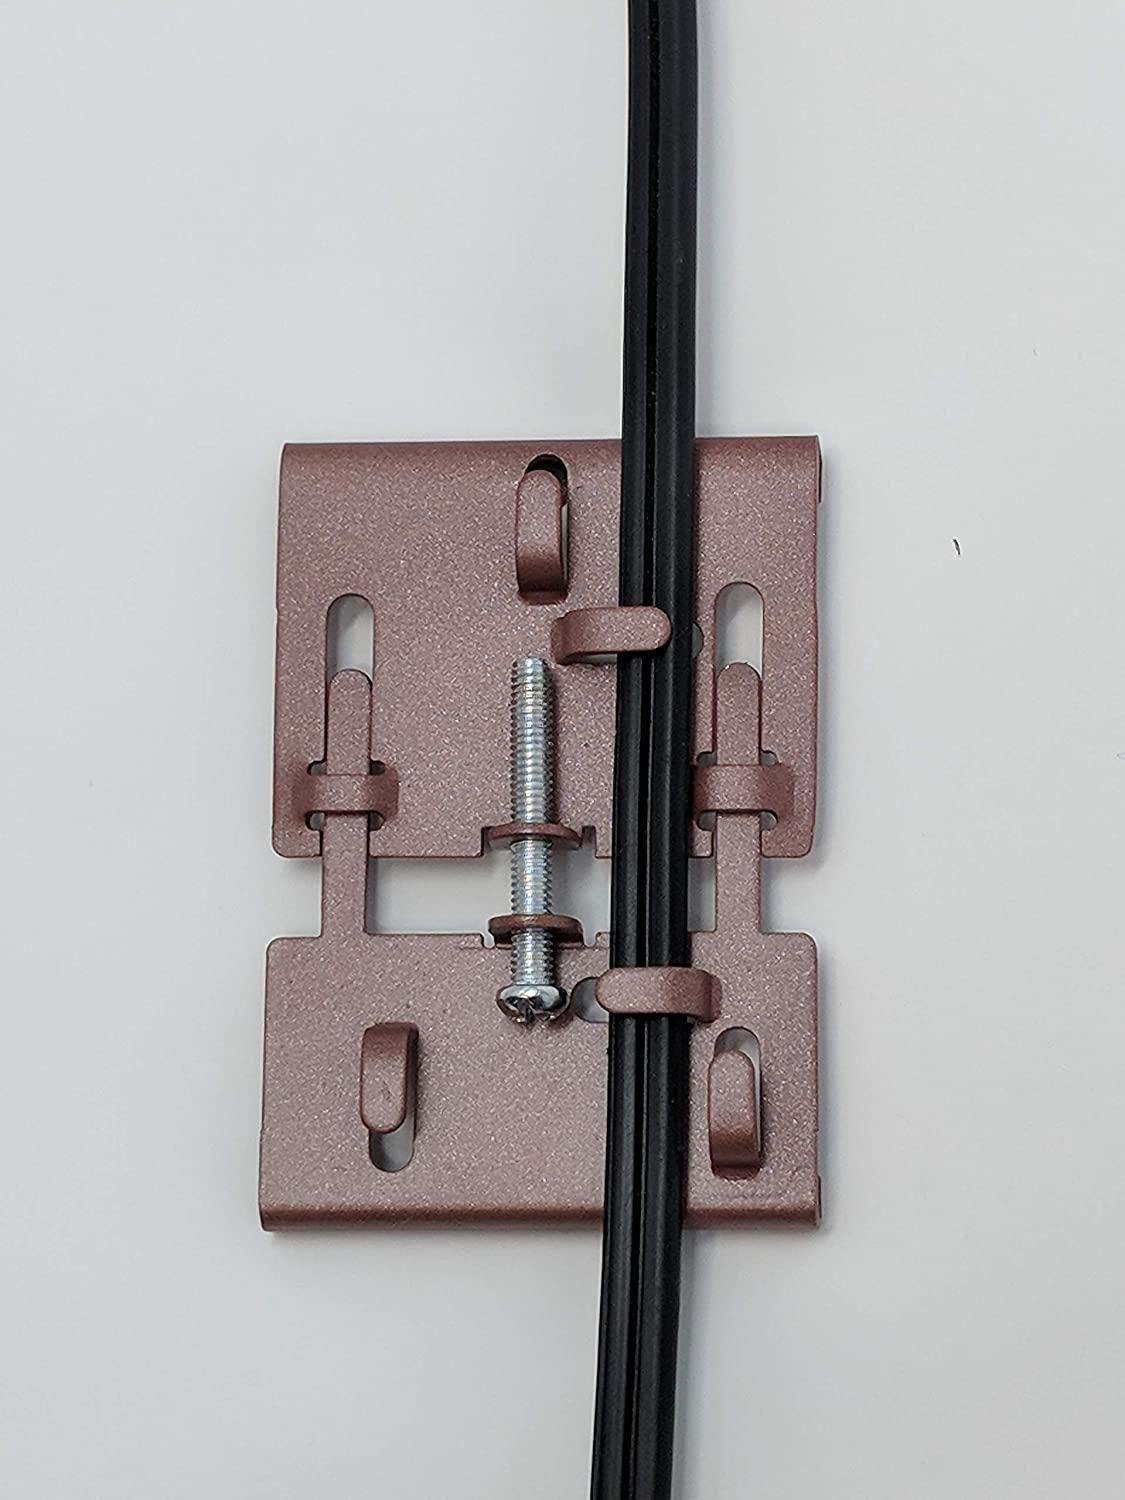 Fastener Brick Clamp Hook Adjustable Hang Decorations Fits Bricks 2 1//8 to 3 1//4-4 Pack Independent Solutions Holds up to 30 Pounds